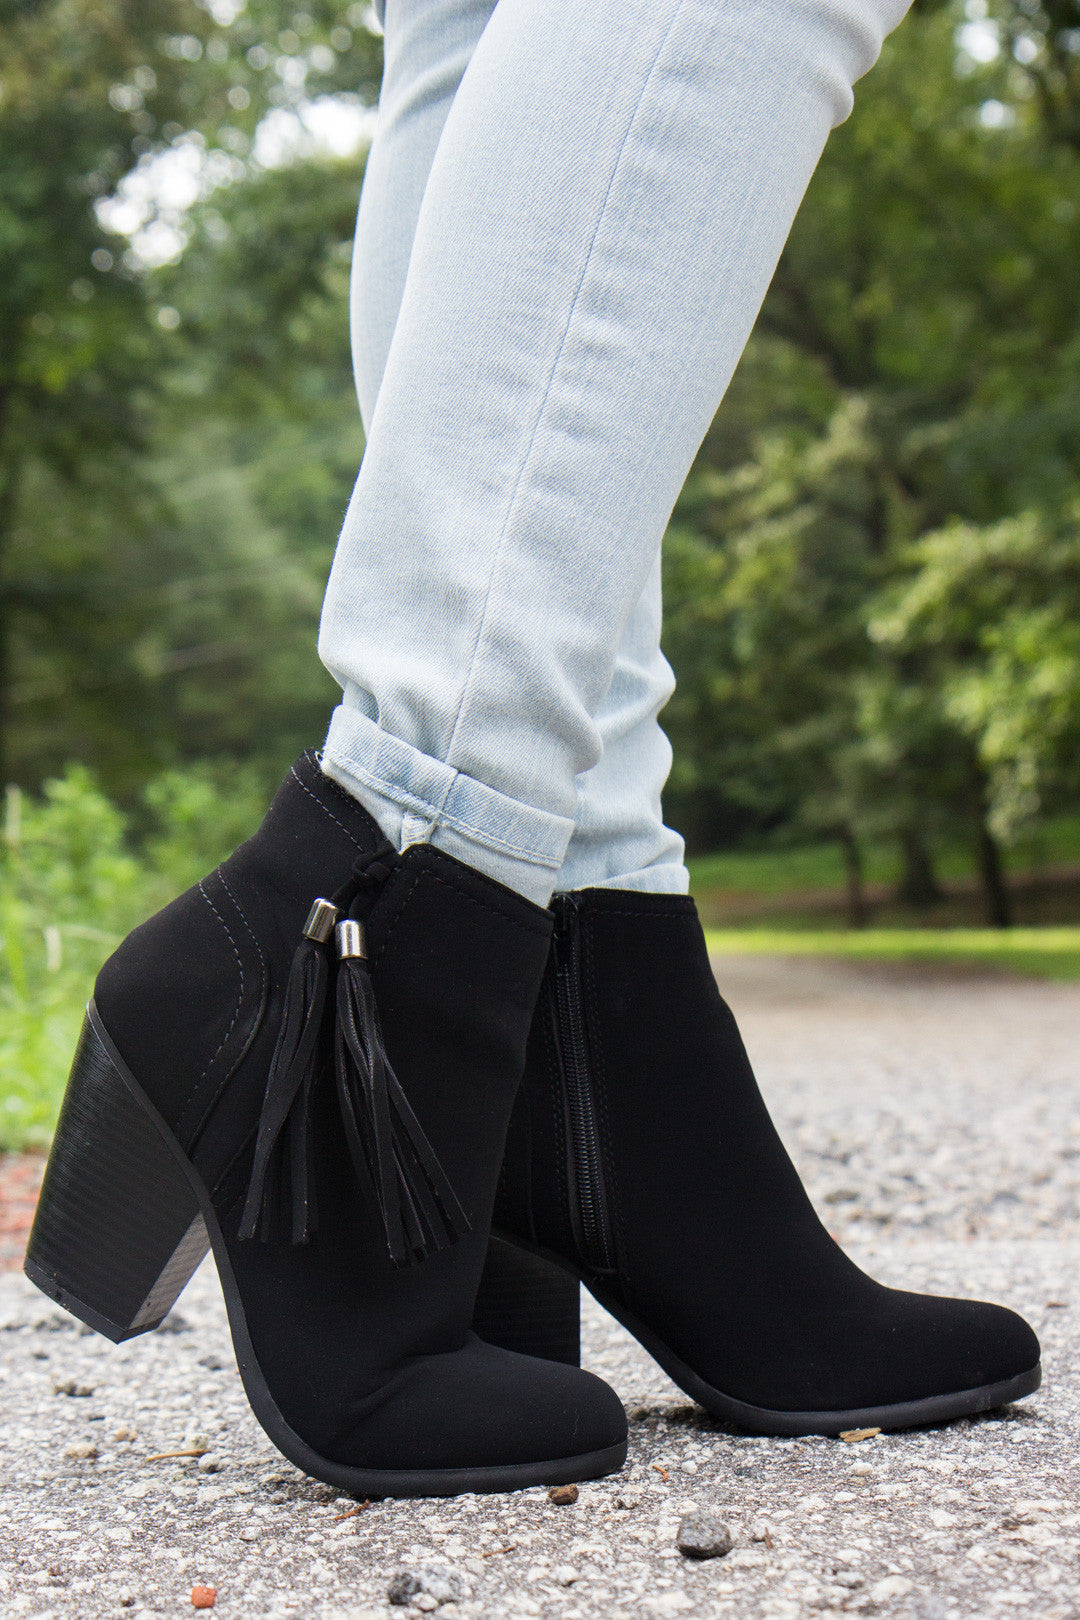 Swing In My Step Booties - Black - Final Sale